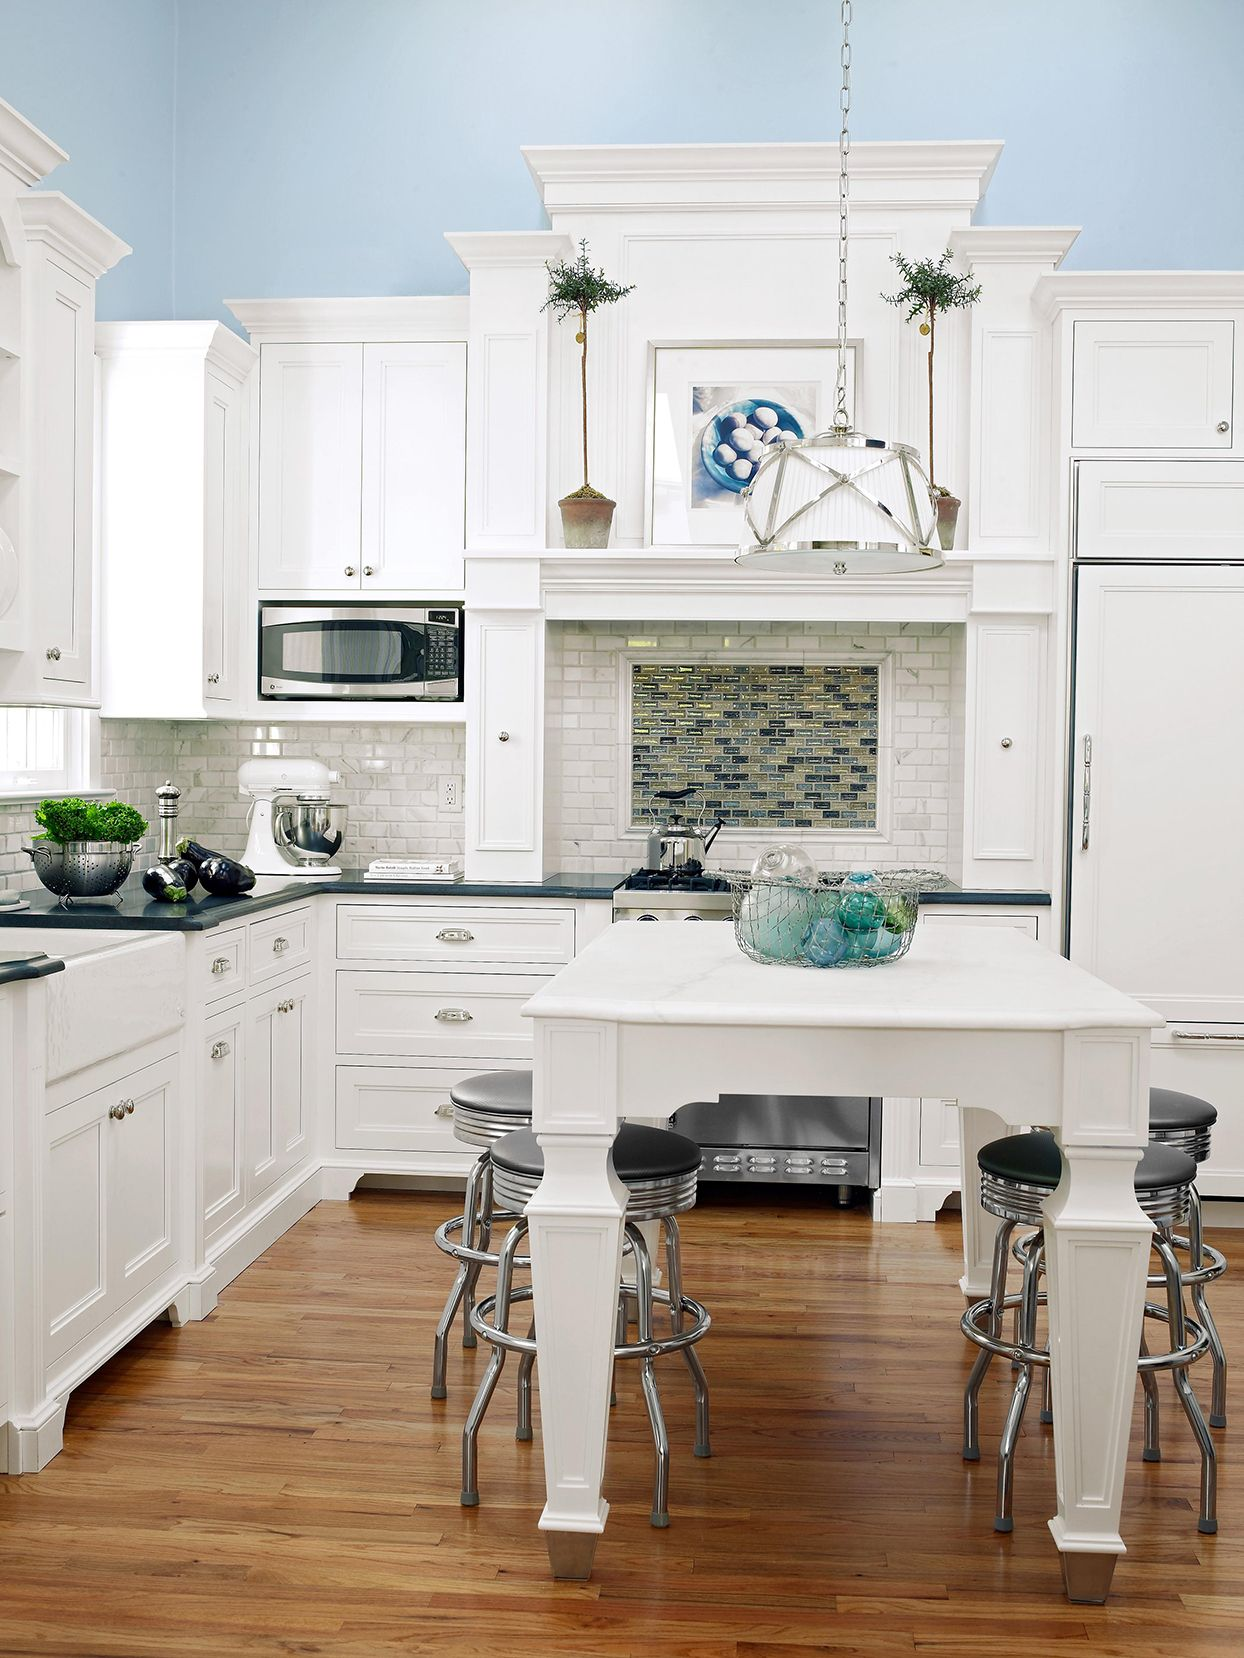 17 Blue Kitchen Ideas for a Refreshingly Colorful Cooking ...